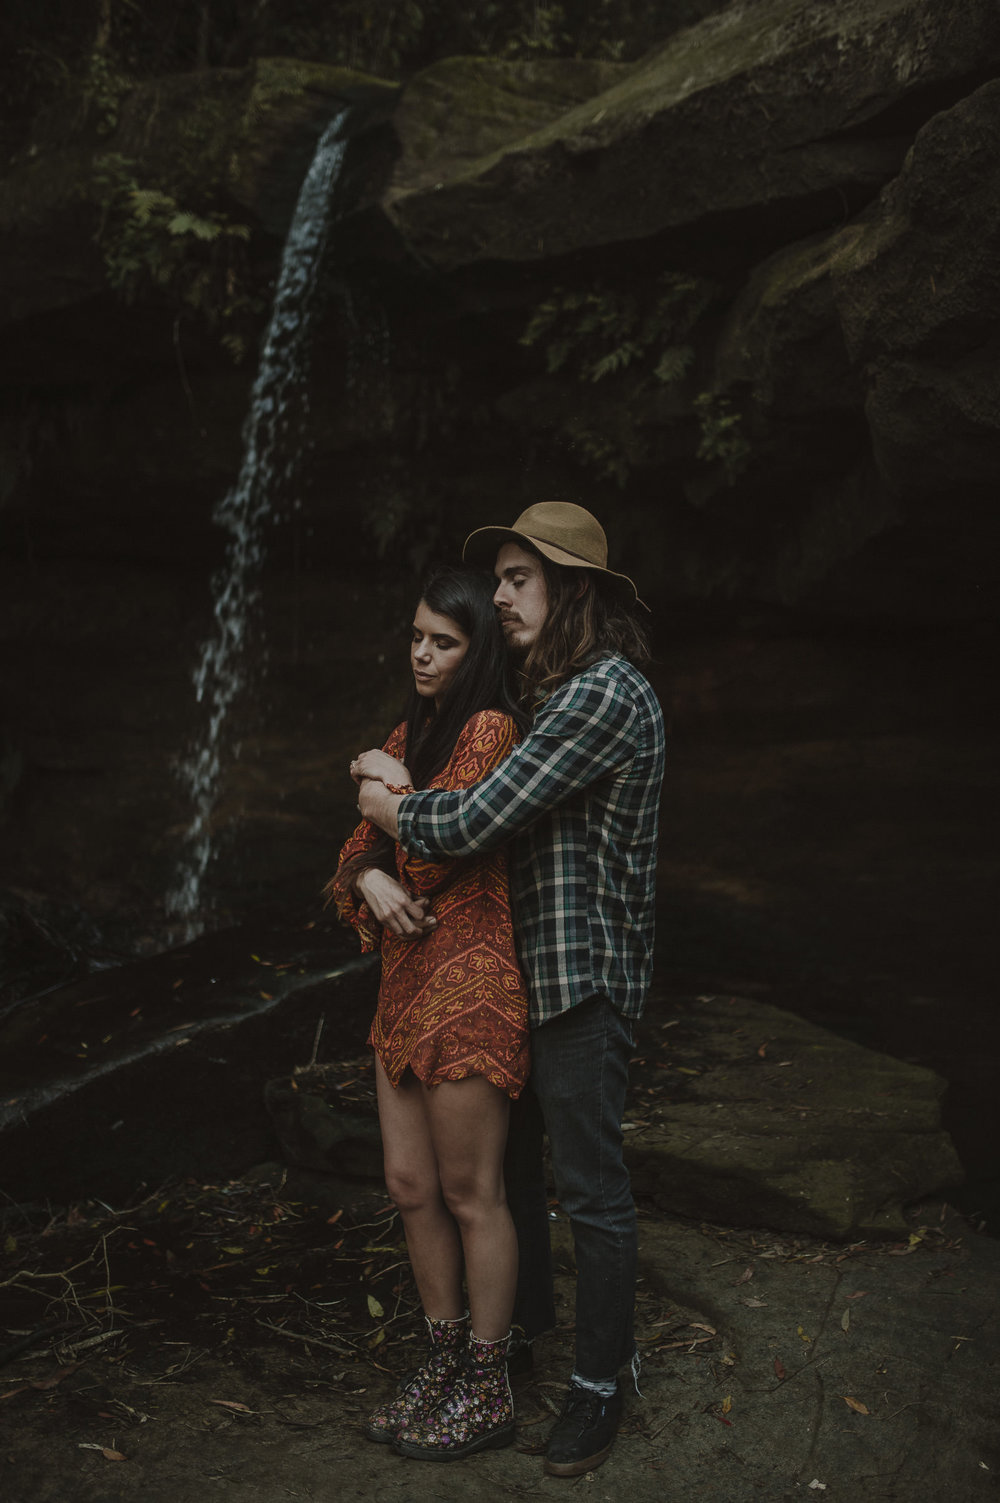 Ash_Dan_Sommersby_Falls_Engagement_Shoot_Blog-21.jpg